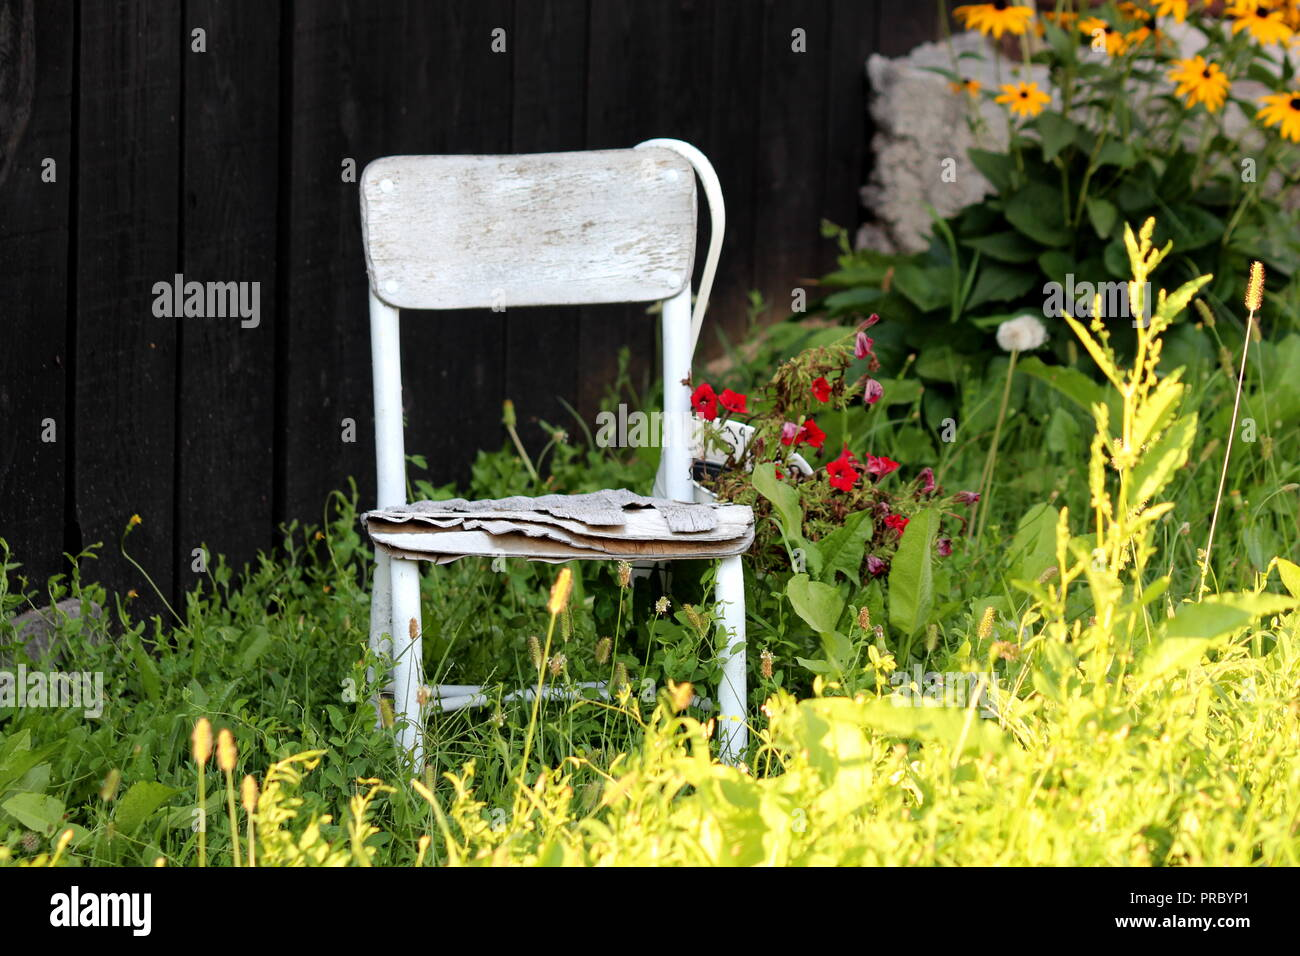 Surprising Old Cracked White Wooden Chair Left As Decoration In Shade Dailytribune Chair Design For Home Dailytribuneorg